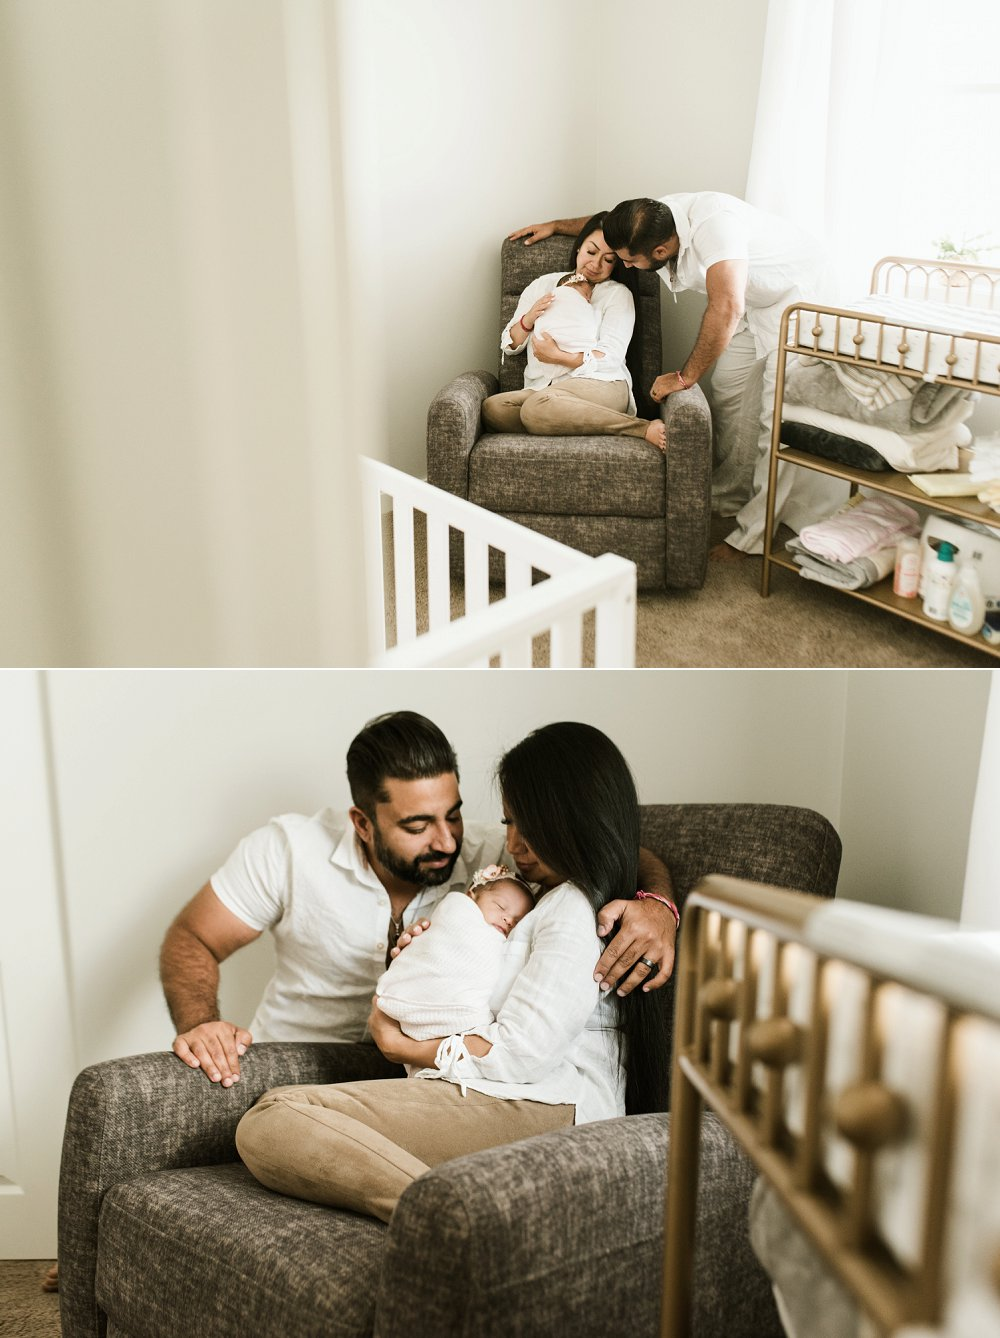 Winnipeg newborn session and photographer of baby Seva Lee